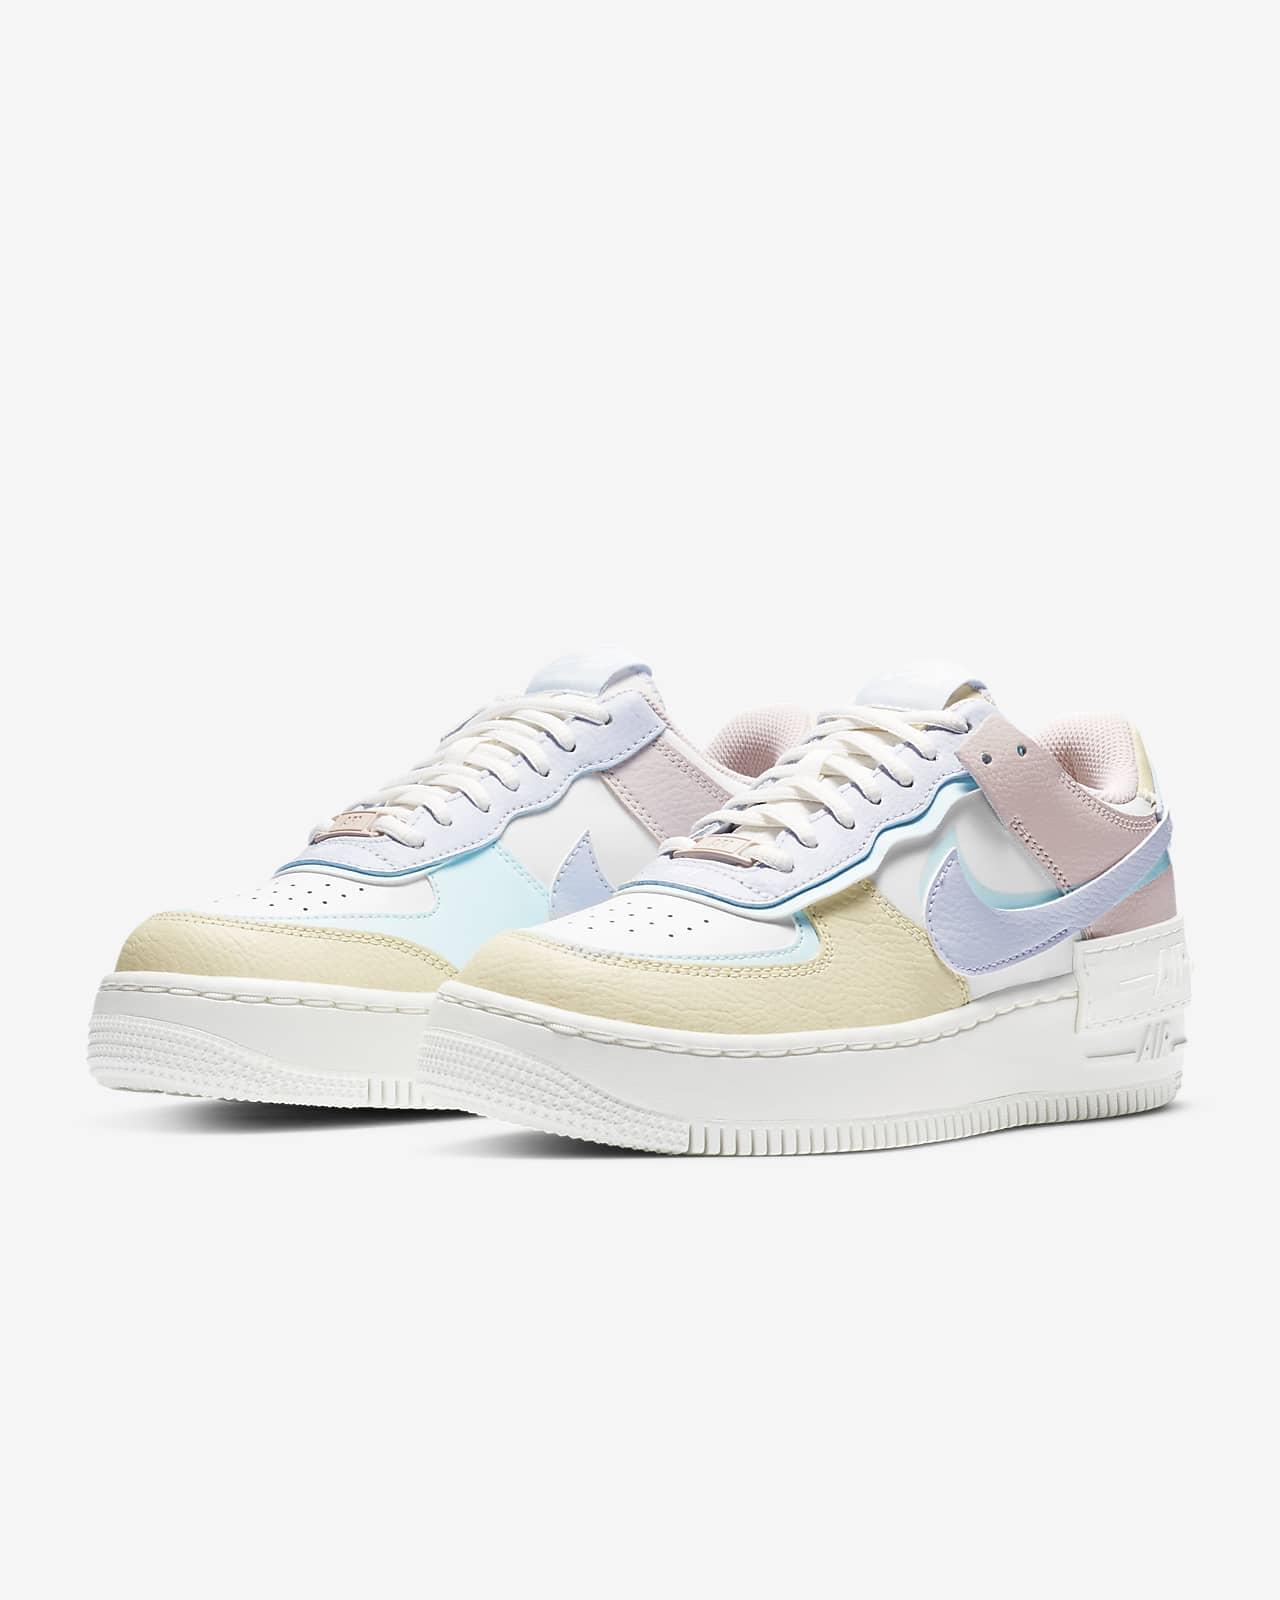 Nike Air Force 1 Shadow Women S Shoe Nike Com Vind zwart air force 1 schoenen op nike.com. nike air force 1 shadow women s shoe